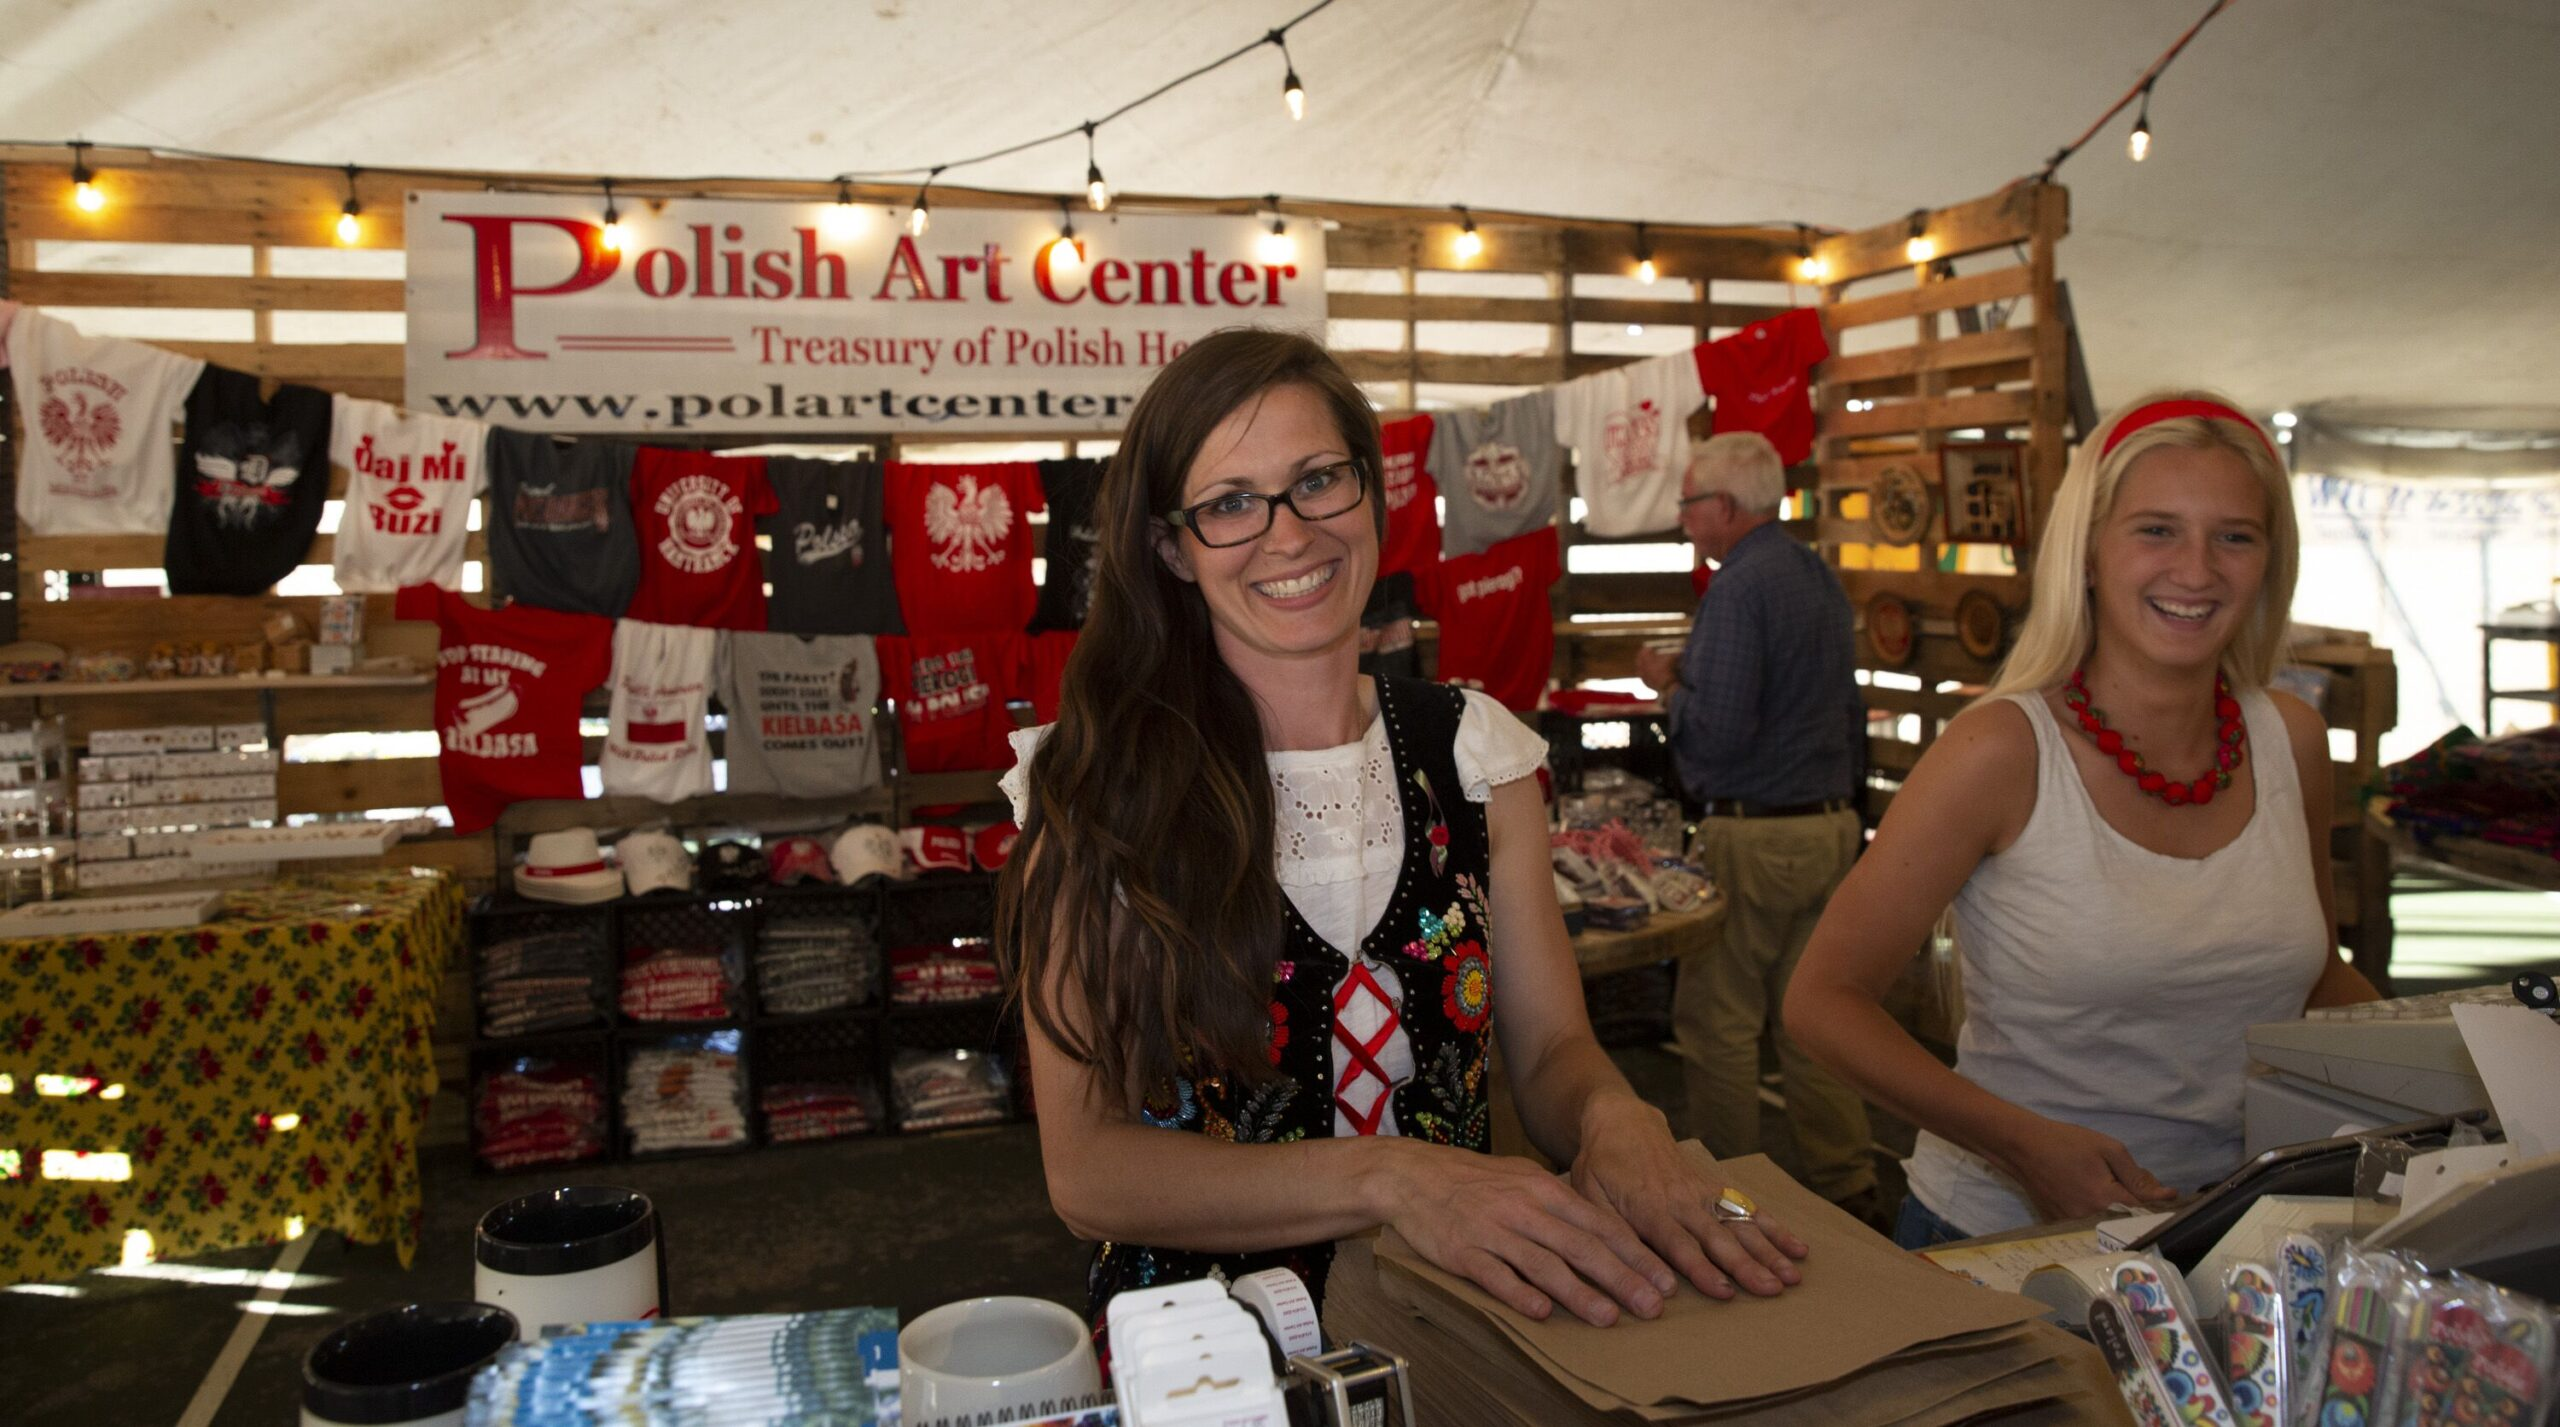 Polish Art Center Booth at Polka Festival